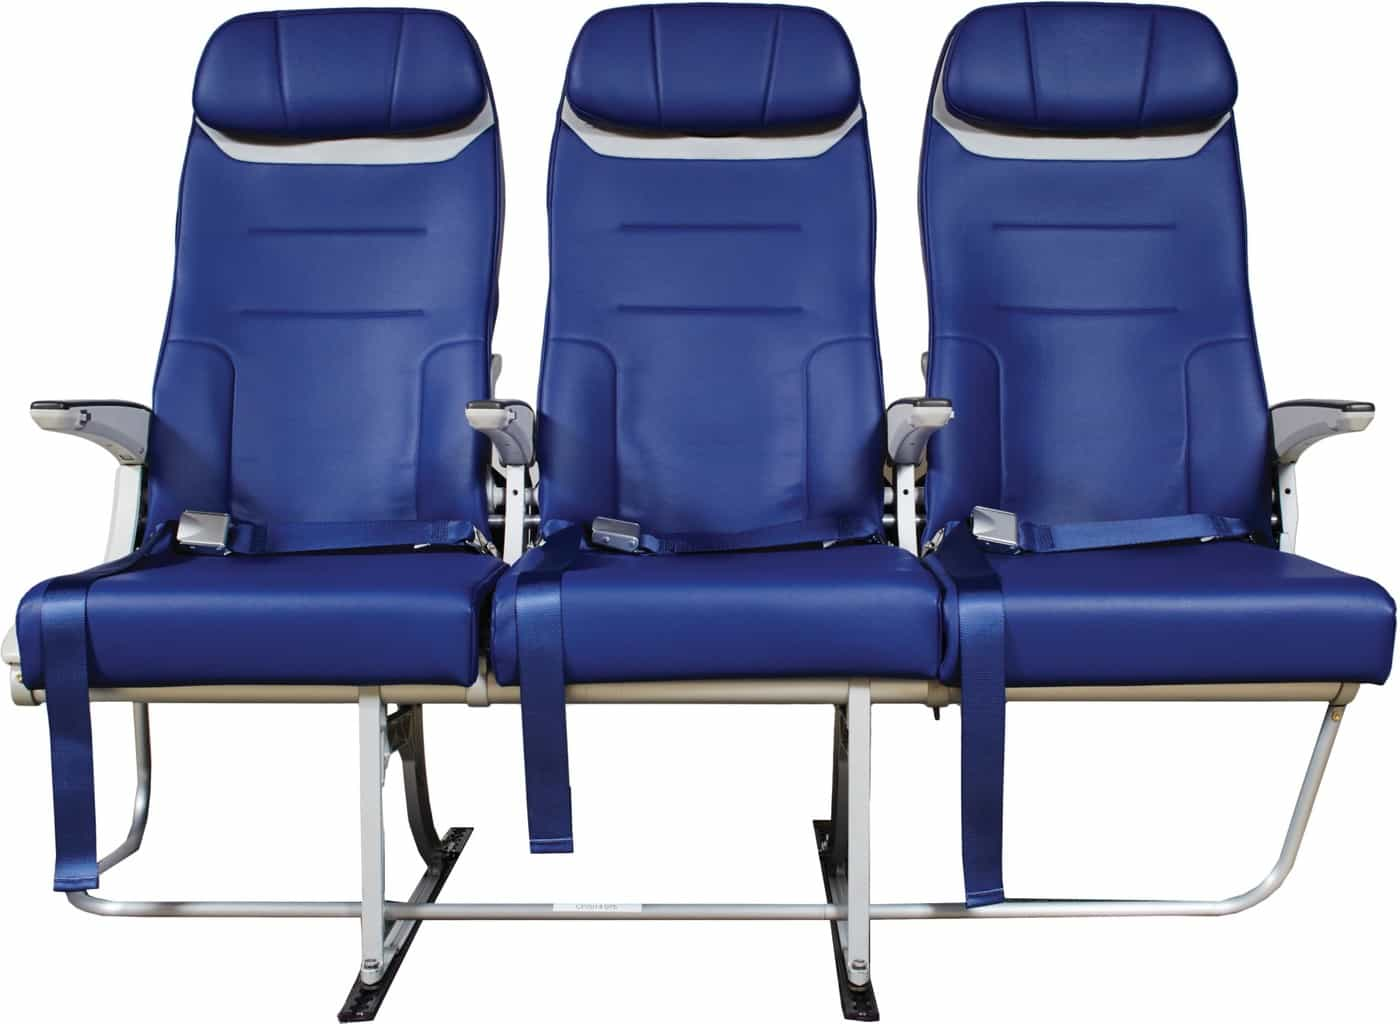 Get a row to yourself on the plane, Traveling Well For Less